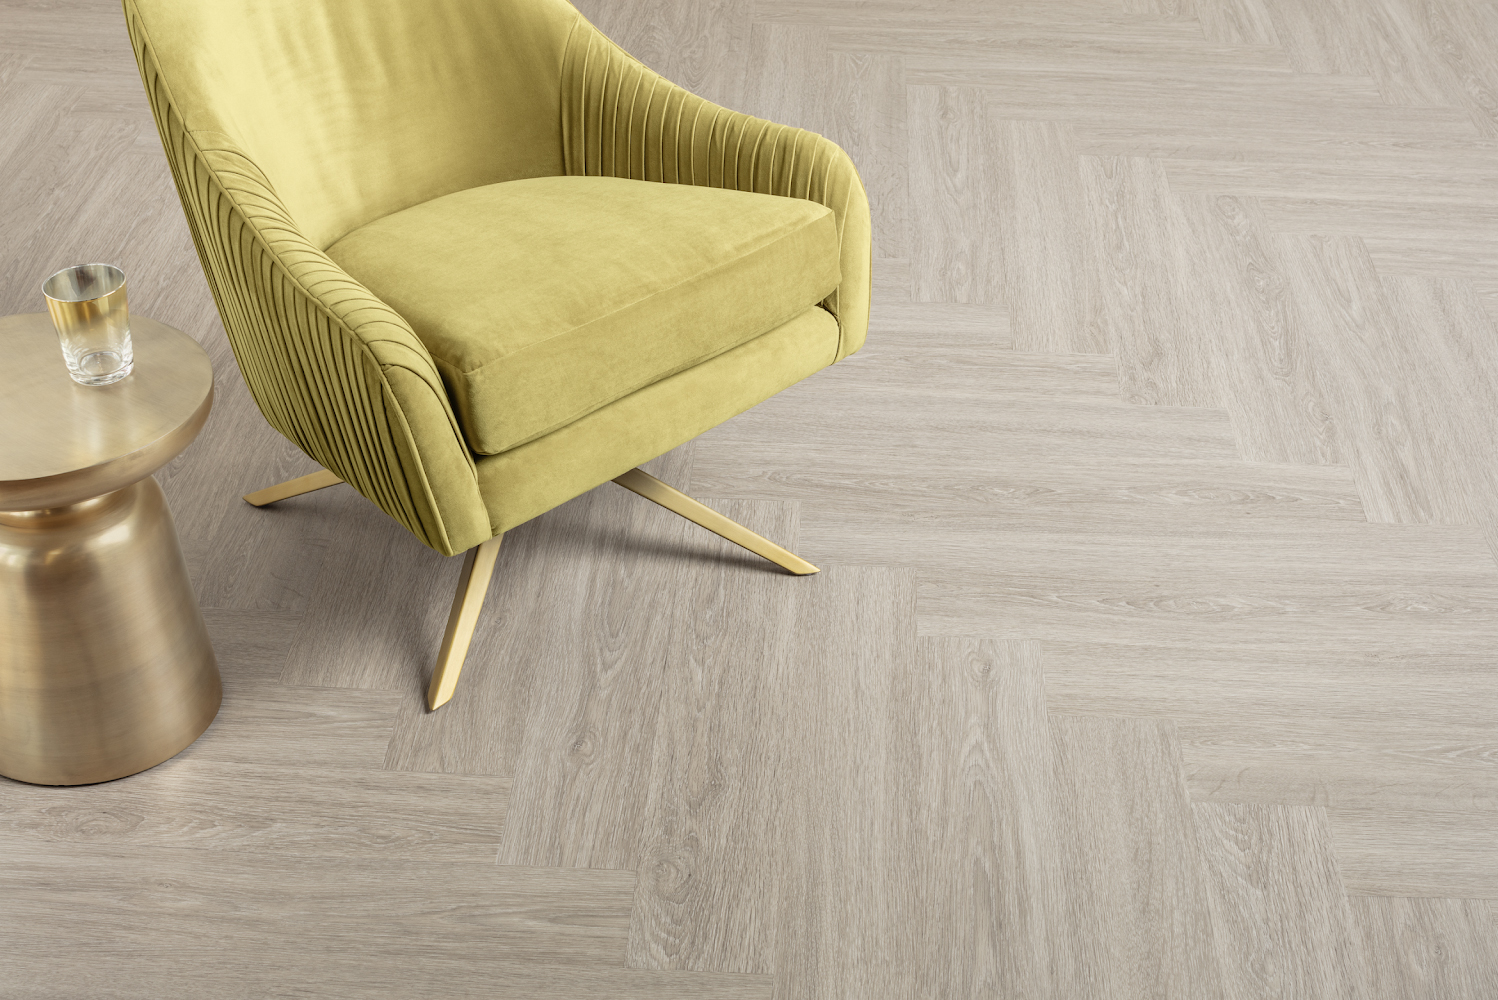 Parterre Flooring Systems launched Avara luxury vinyl floor and wall collection.